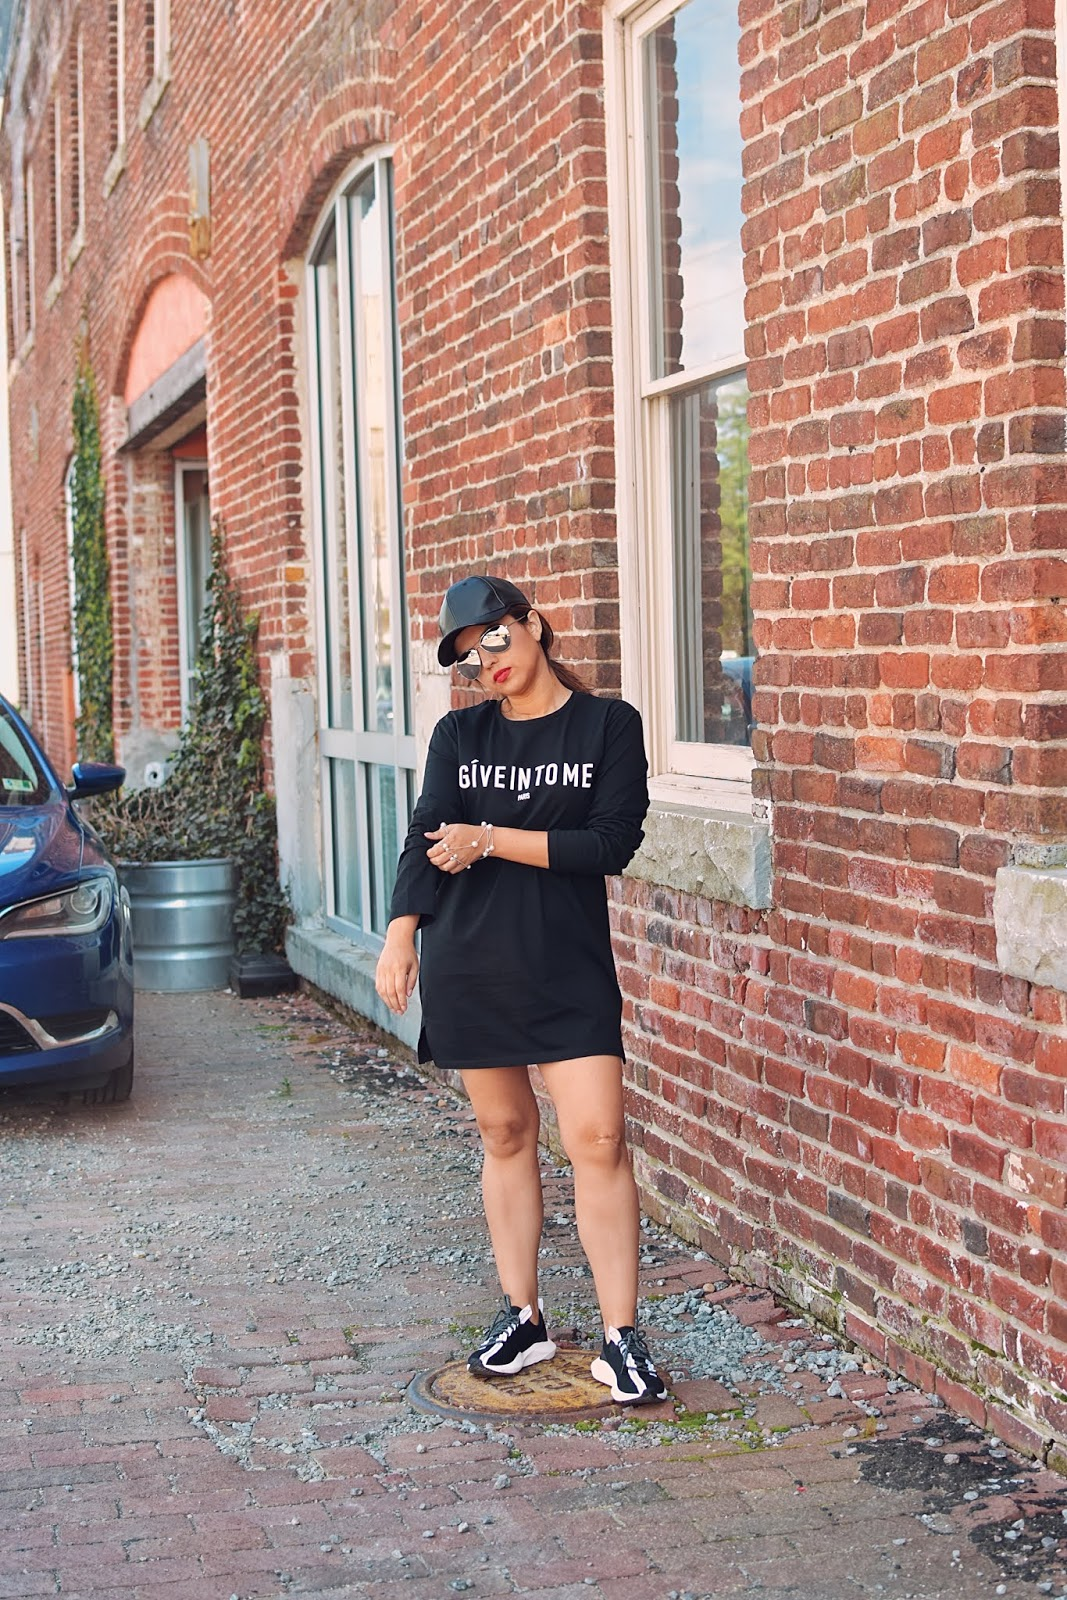 Oversized T-Shirt Dress-mariestilo-travelblogger-richmond va-visit richmond-virginia is for lovers-luxe gal-dcblogger-modaelsalvador-marisolflamenco-